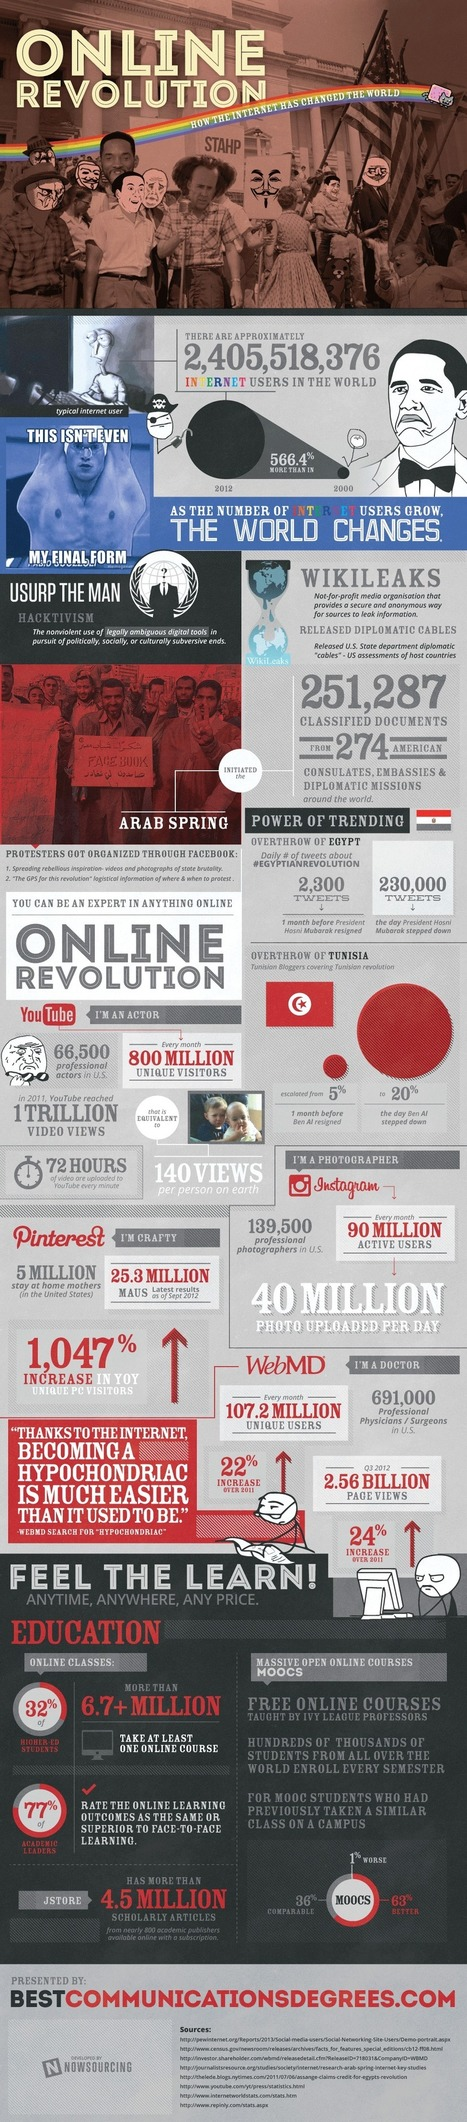 How the Internet has changed the world | Educommunication | Scoop.it